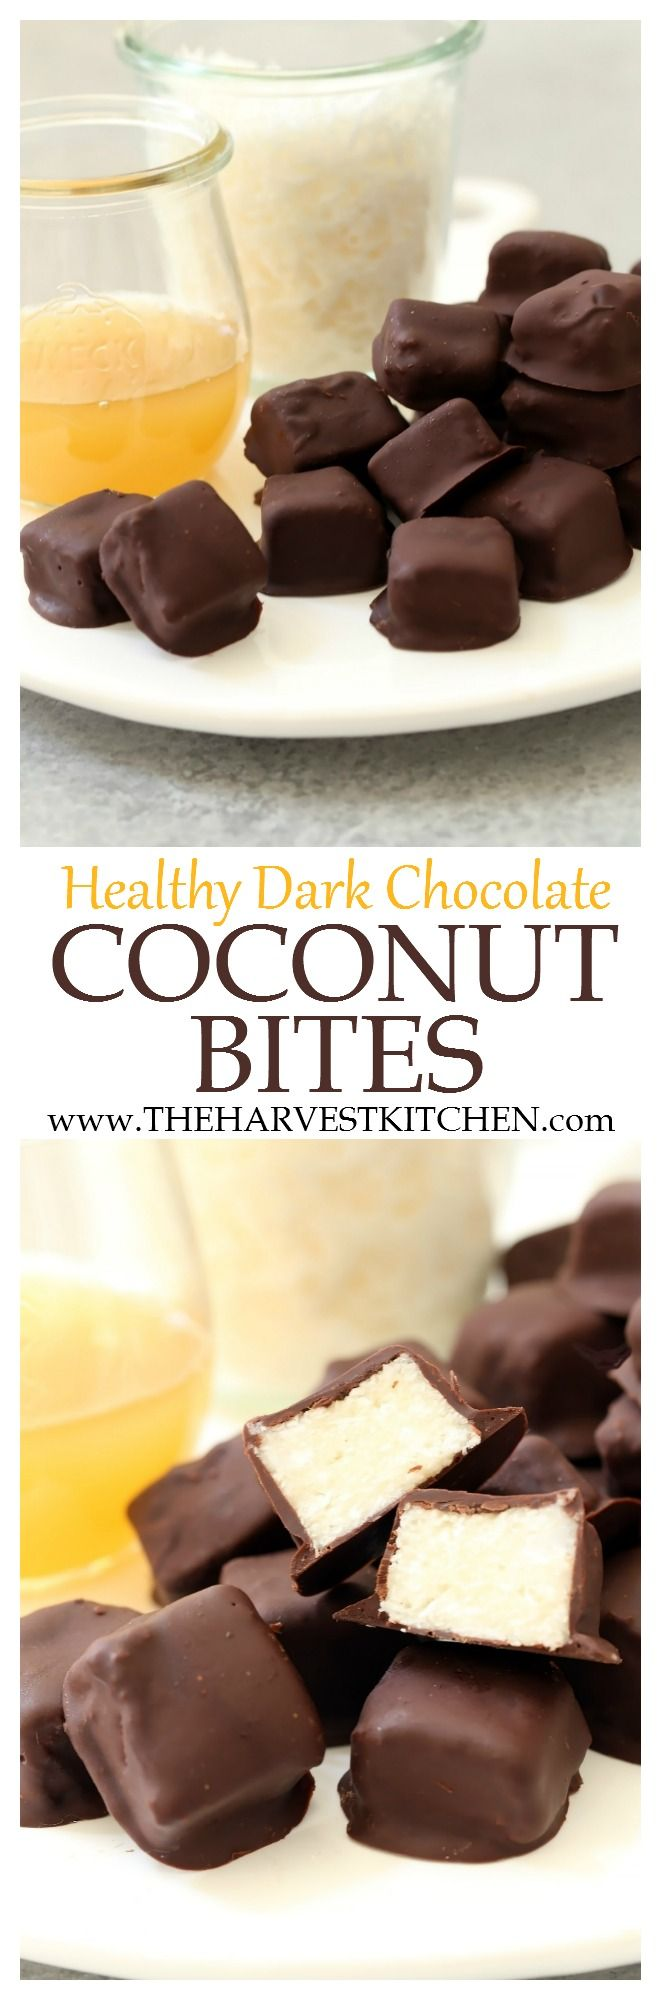 These Healthy Dark Chocolate Coconut Bites are little squares of pure chocolate and coconut bliss.  They come together in about 10 minutes. | healthy recipes |   | healthy candy recipes | | clean eating |   | healthy dessert recipes |